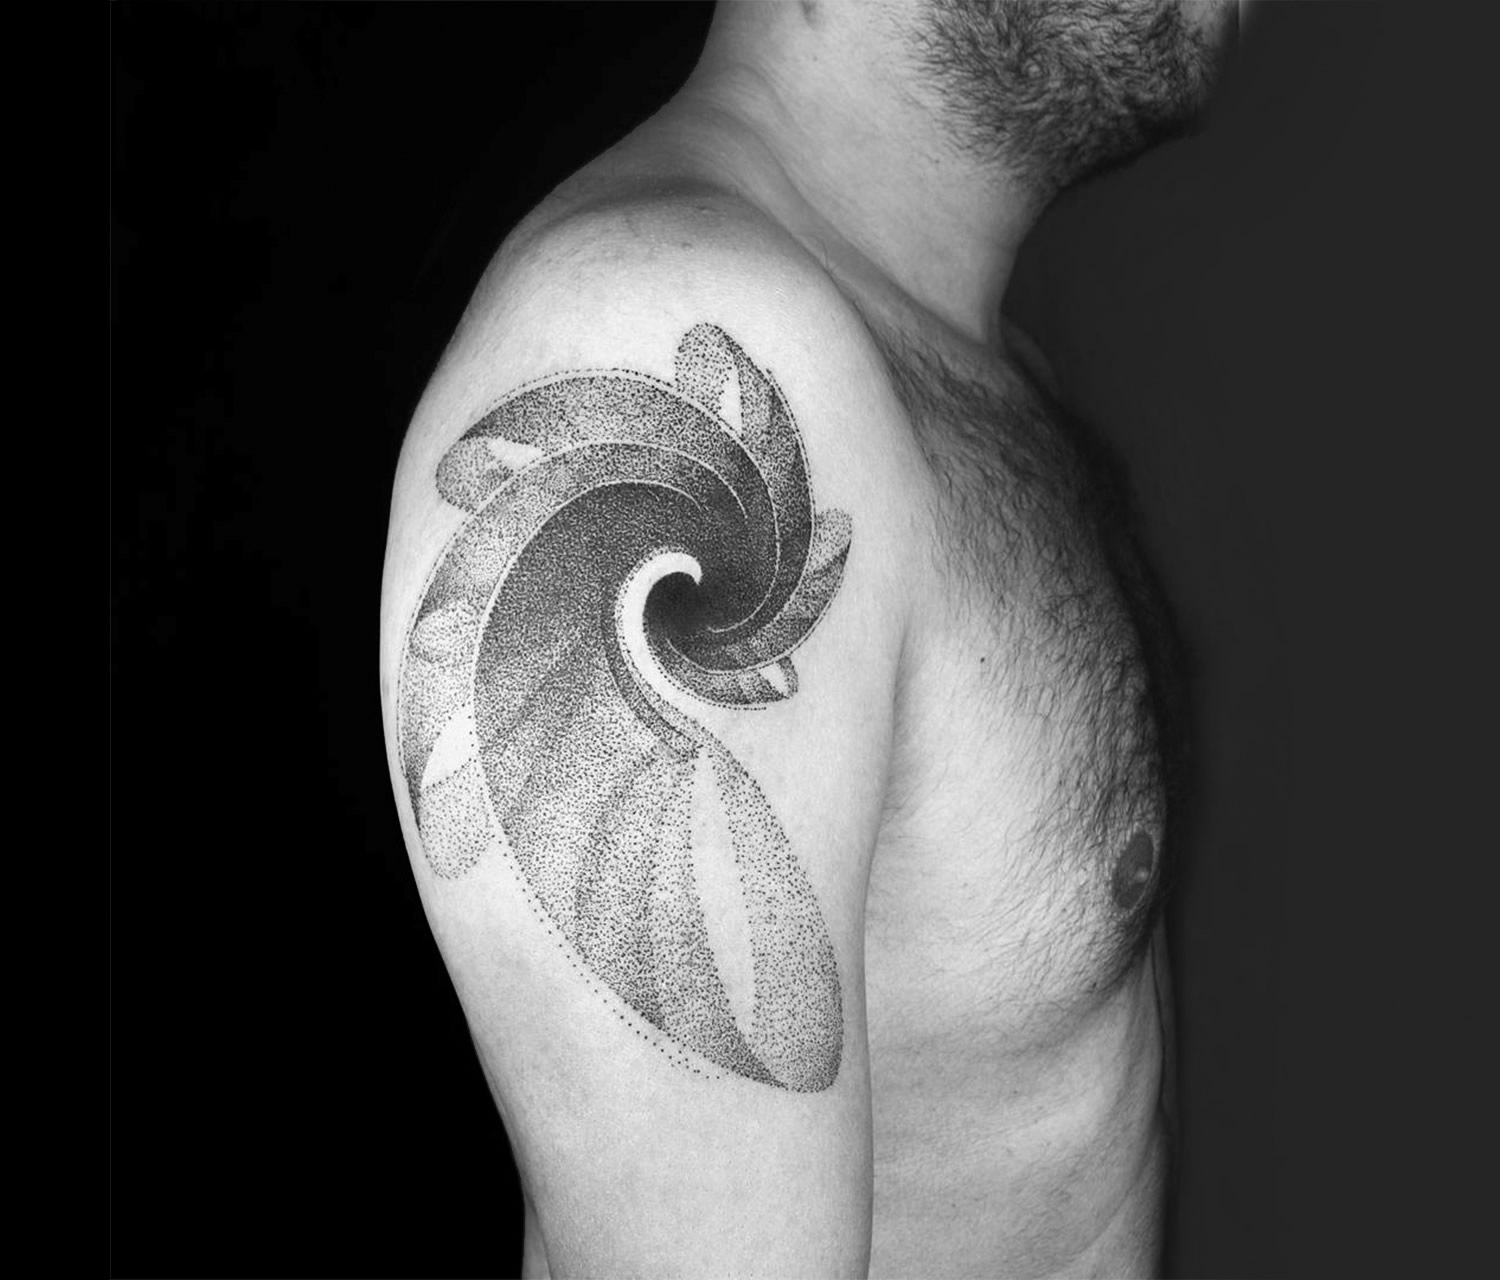 wave in motion, tattoo on arm by okan uckun